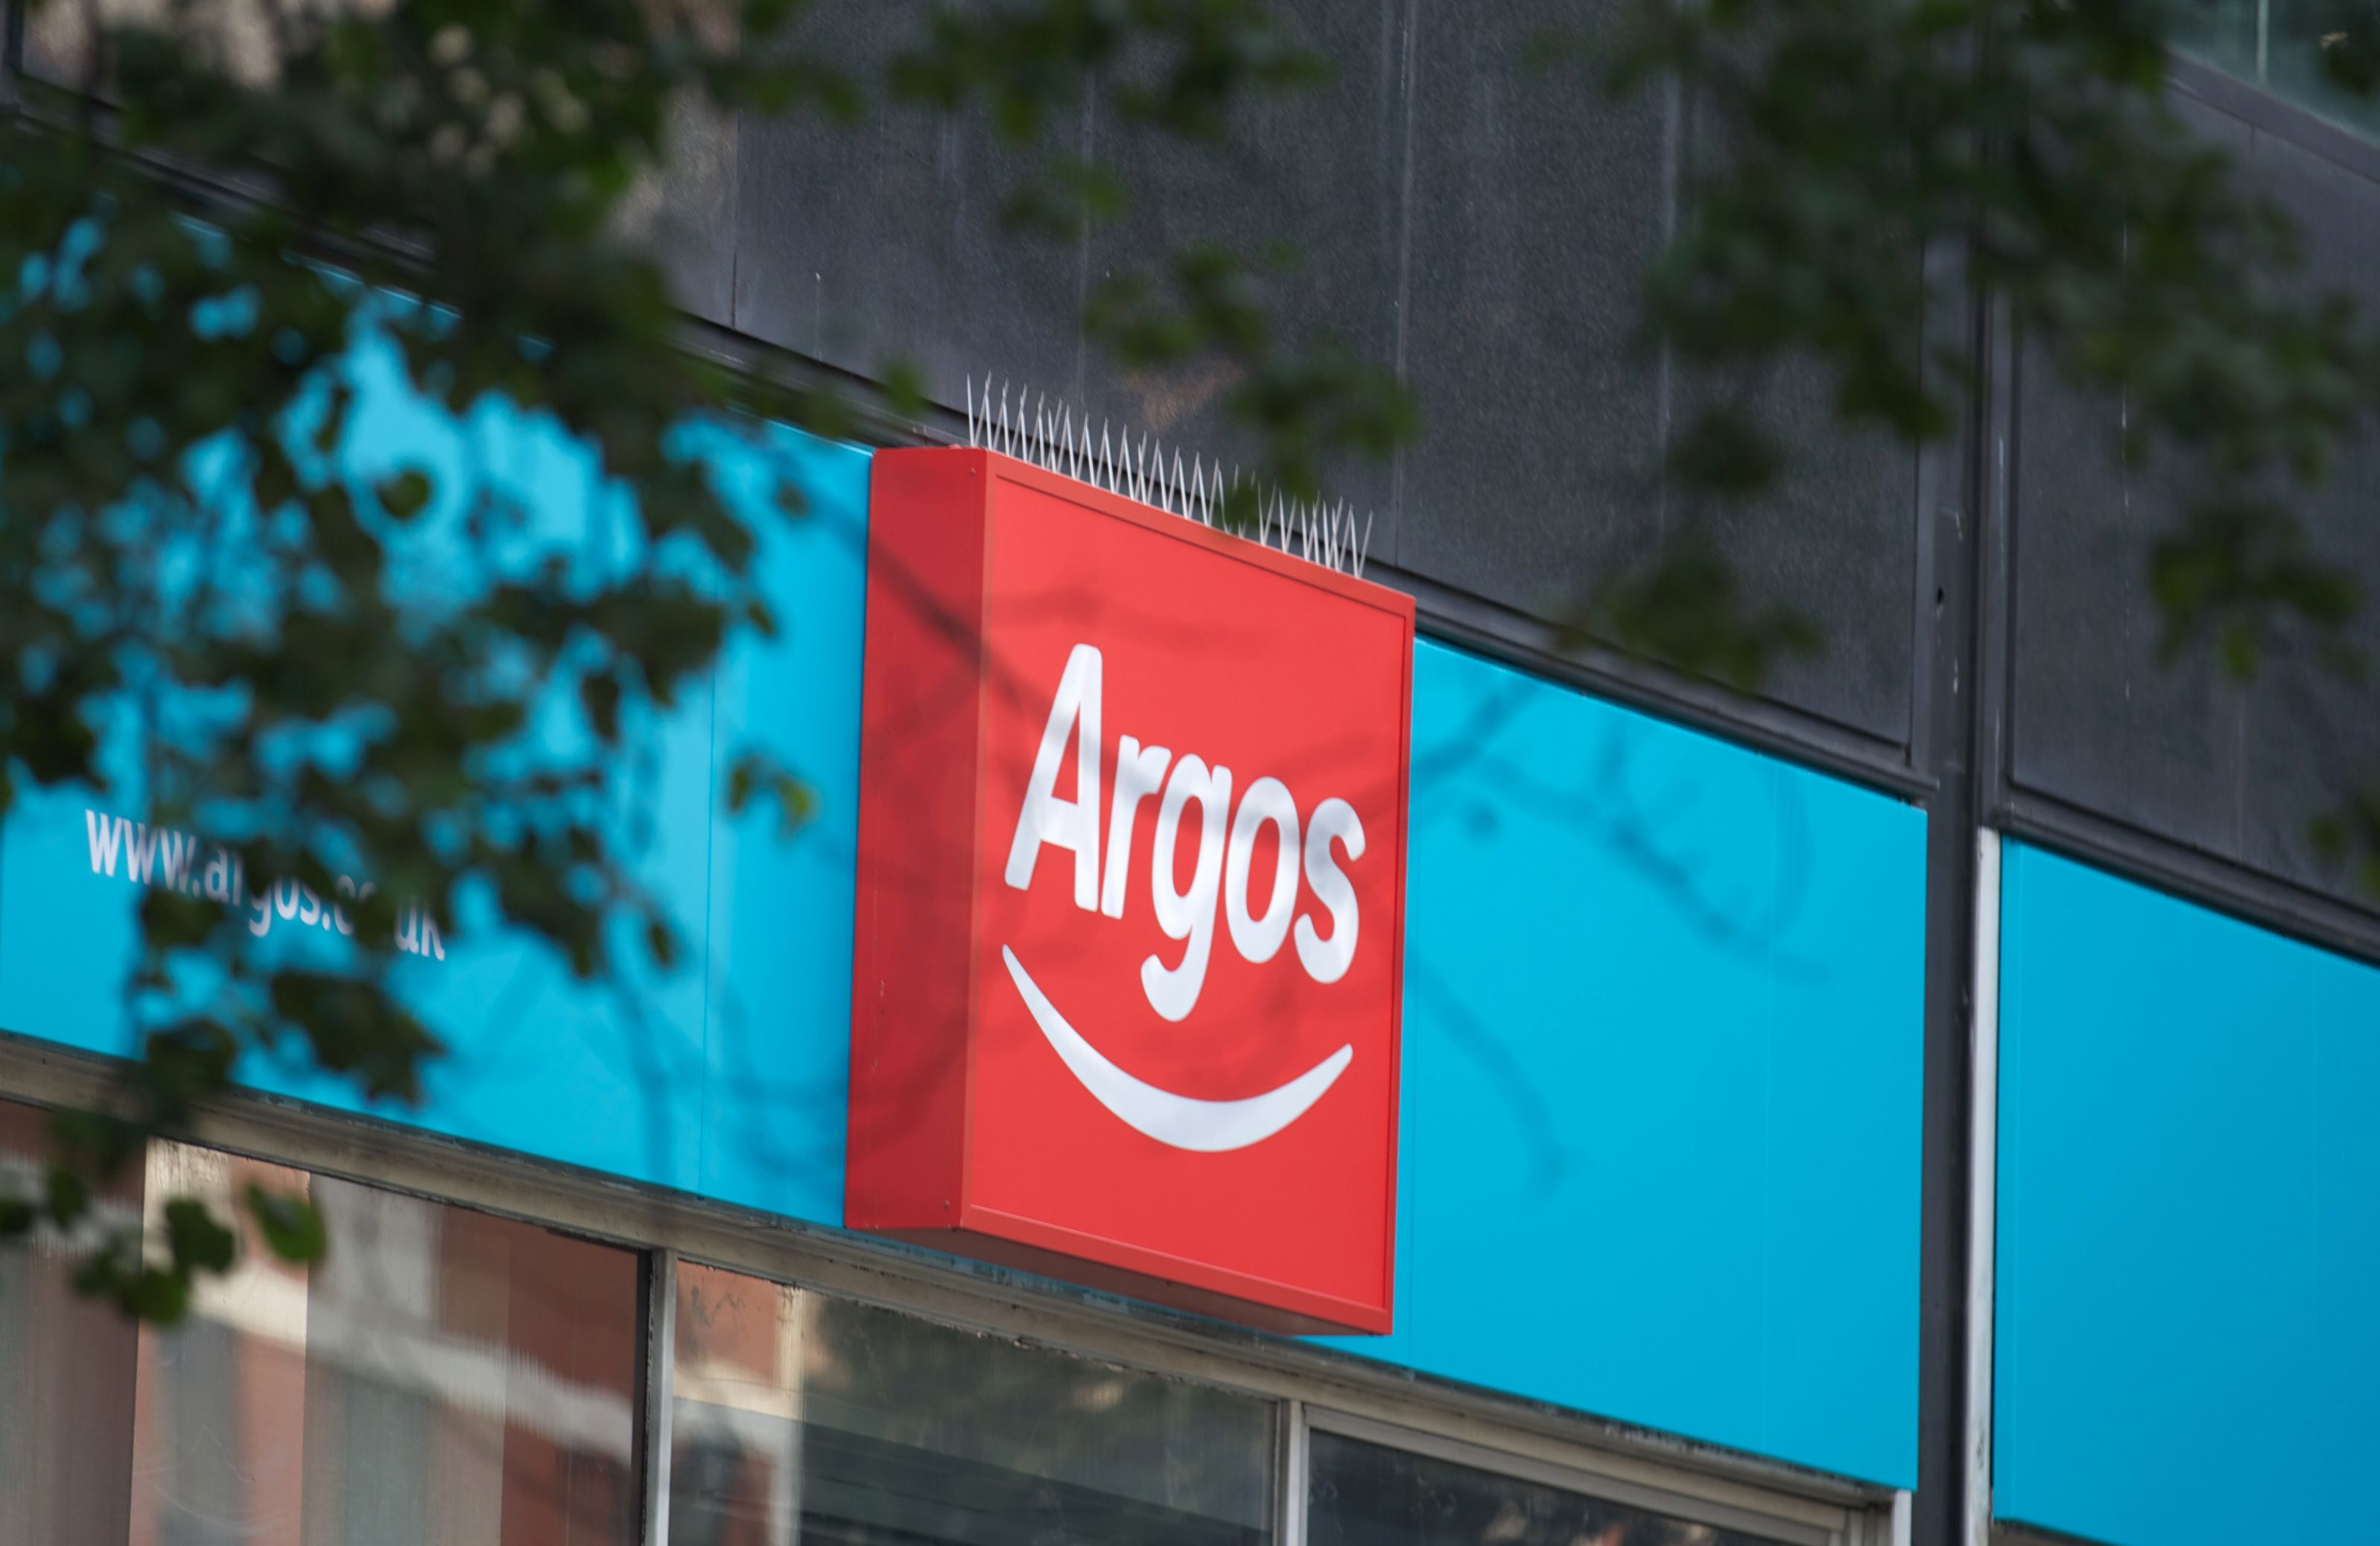 Argos Boxing Day sale starts today: 5 top picks across home and tech